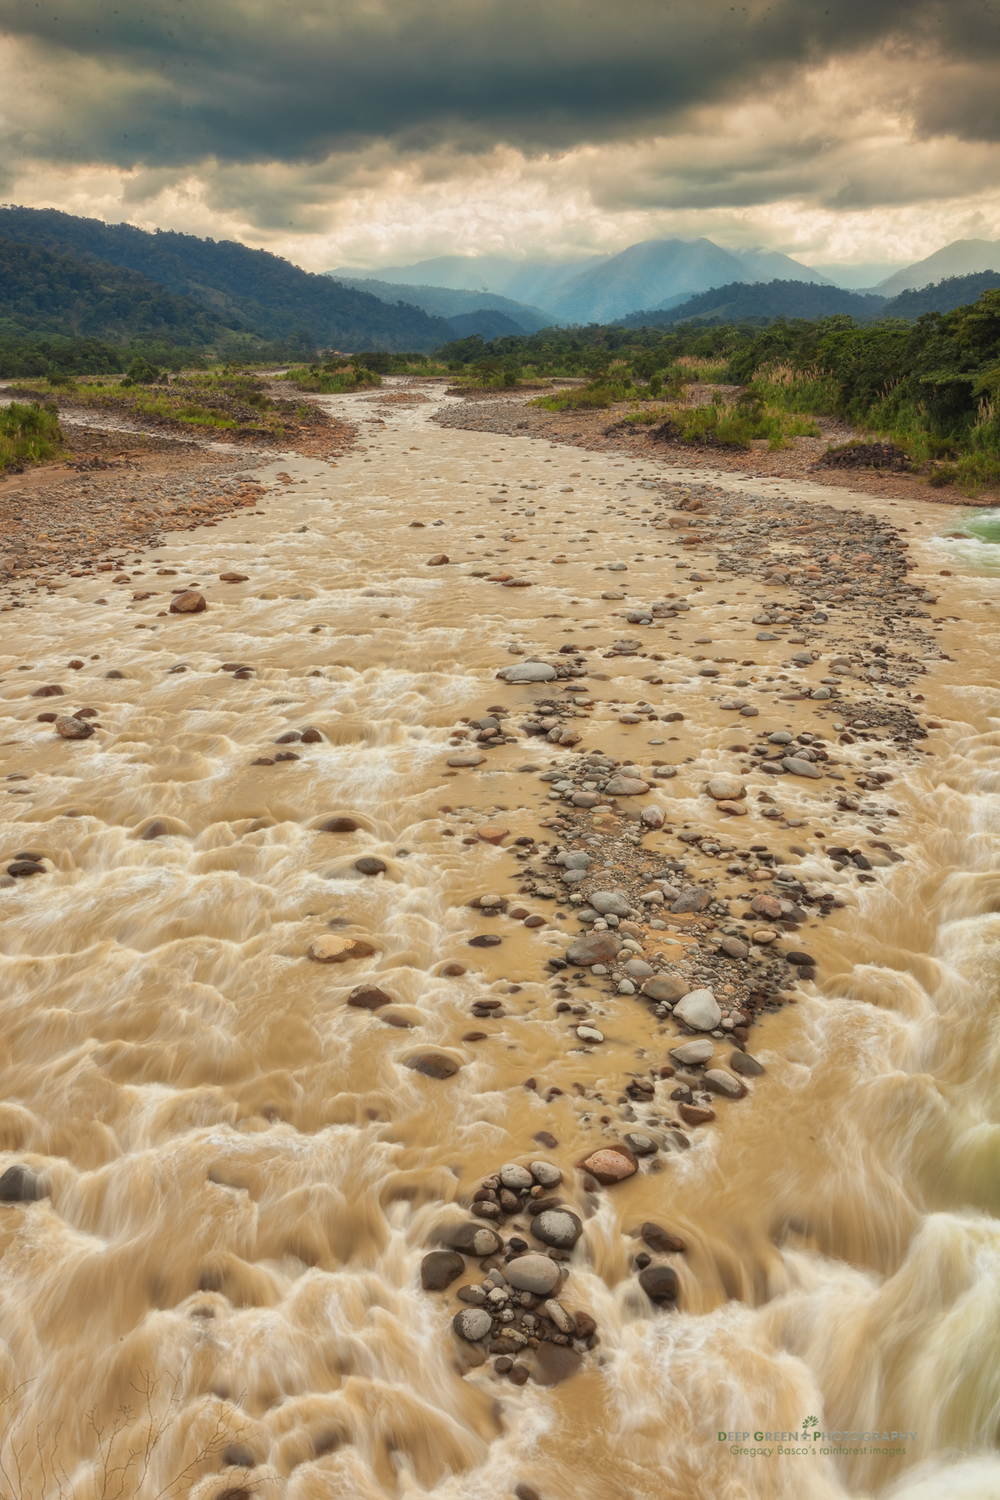 The Toro River descends from the heights of the Braulio Carillo National Park into the lowlands